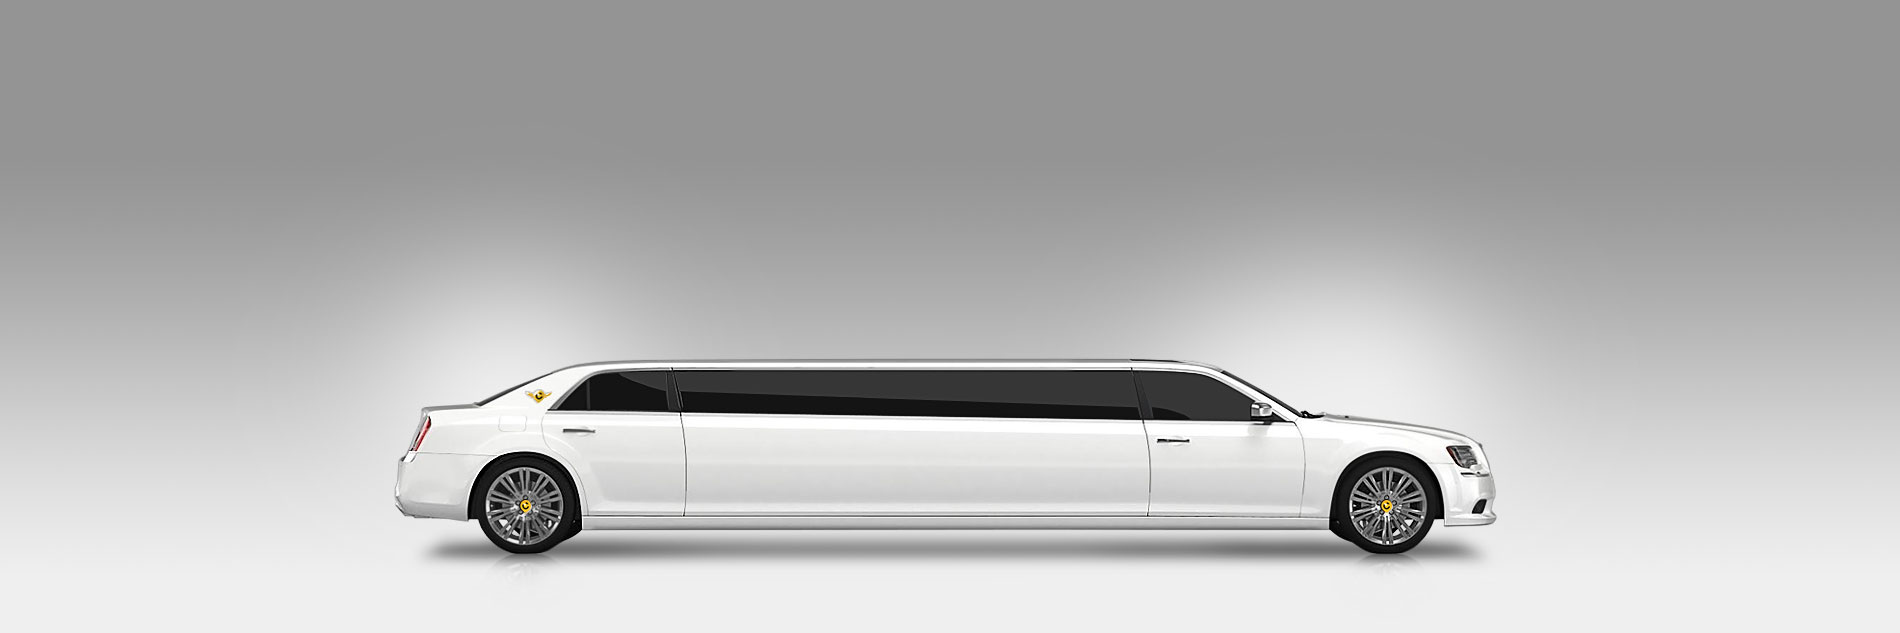 Chrysler 300 Limousines - Colony Limo Service Houston